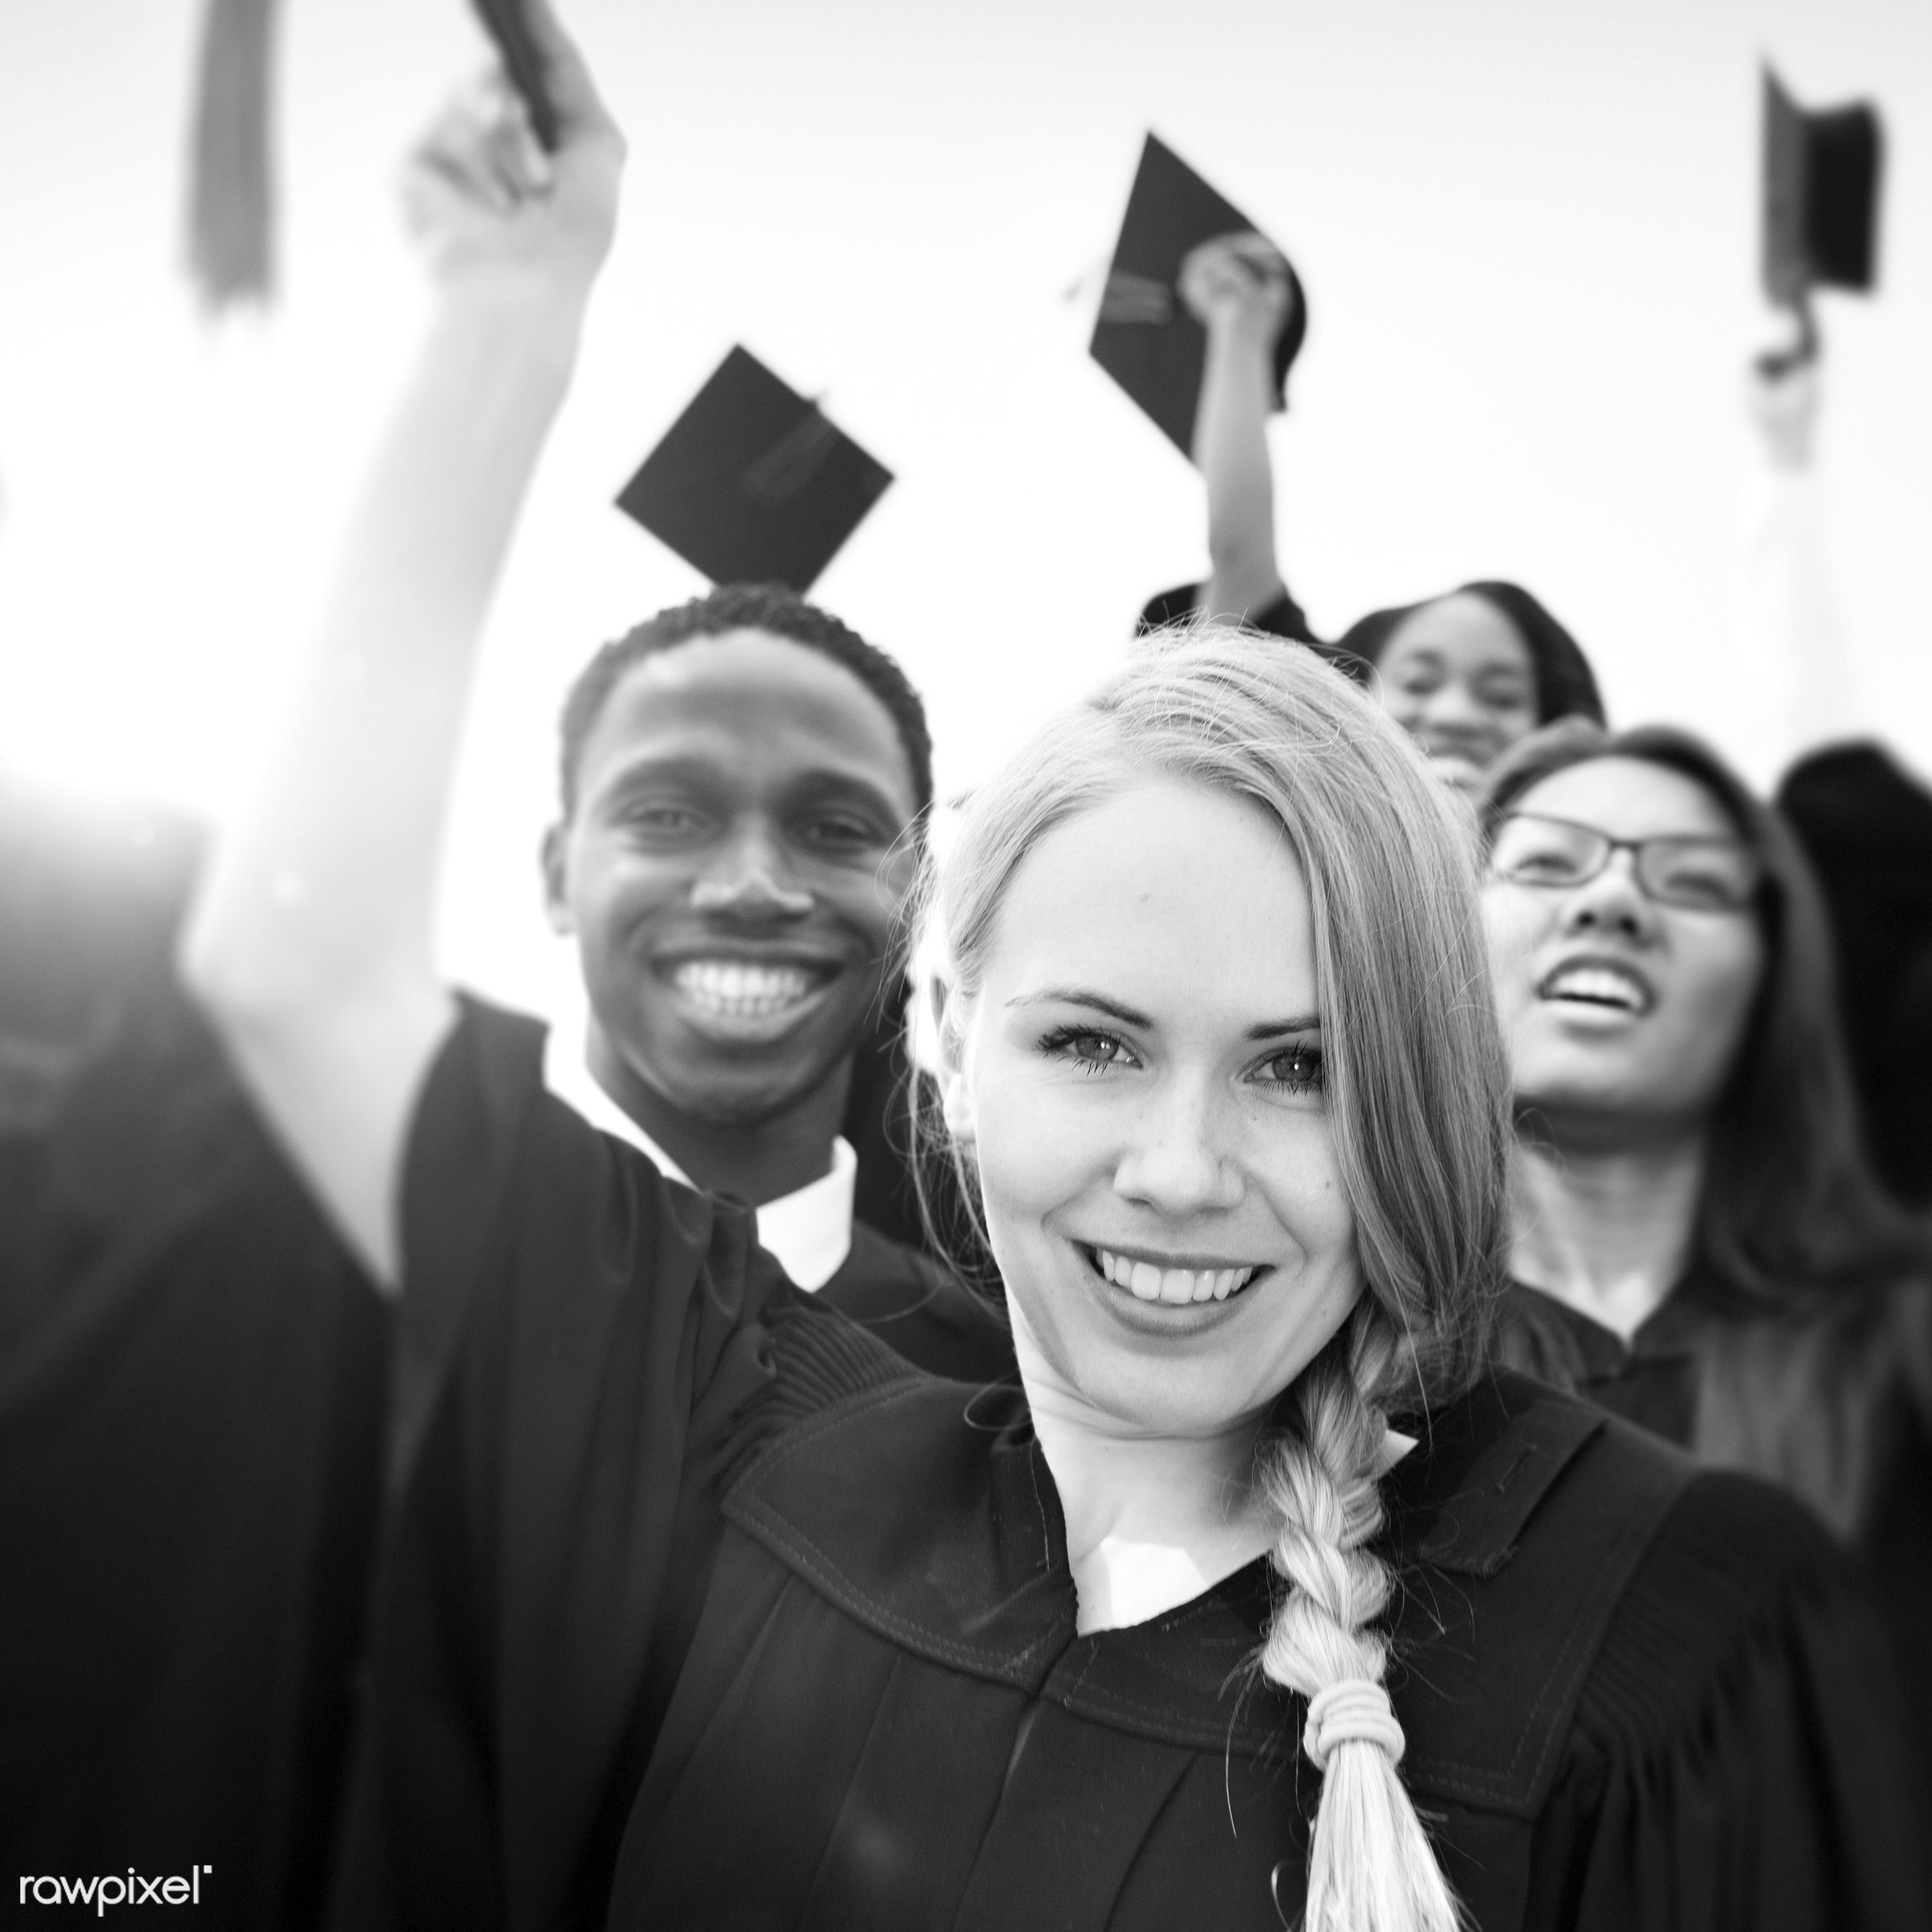 Group of diverse graduating students - academic, achievement, campus, cap, celebration, ceremony, certificate, cheerful,...